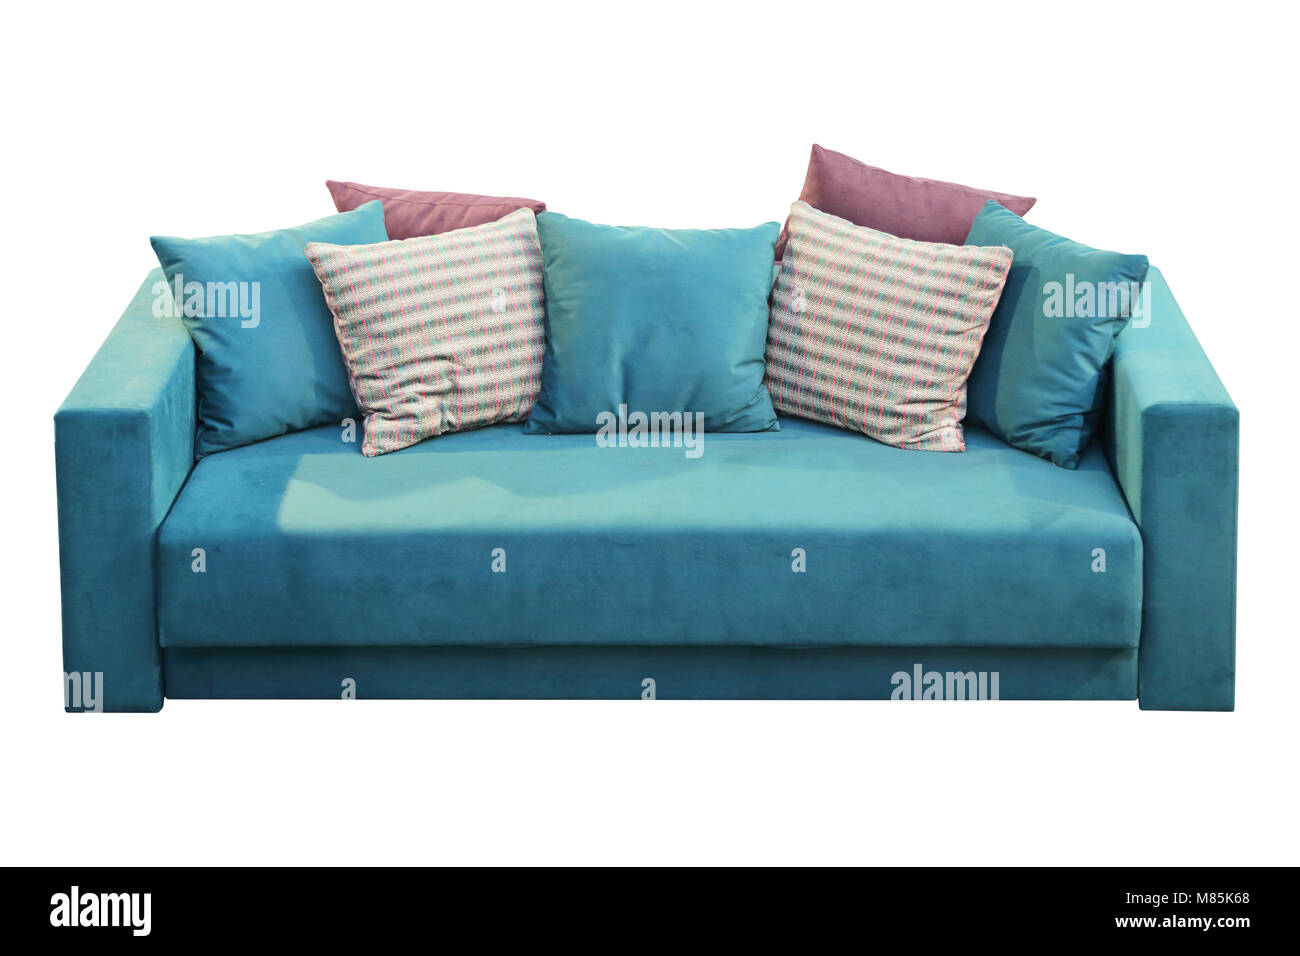 Velvet Sofa Stockfotos & Velvet Sofa Bilder - Alamy